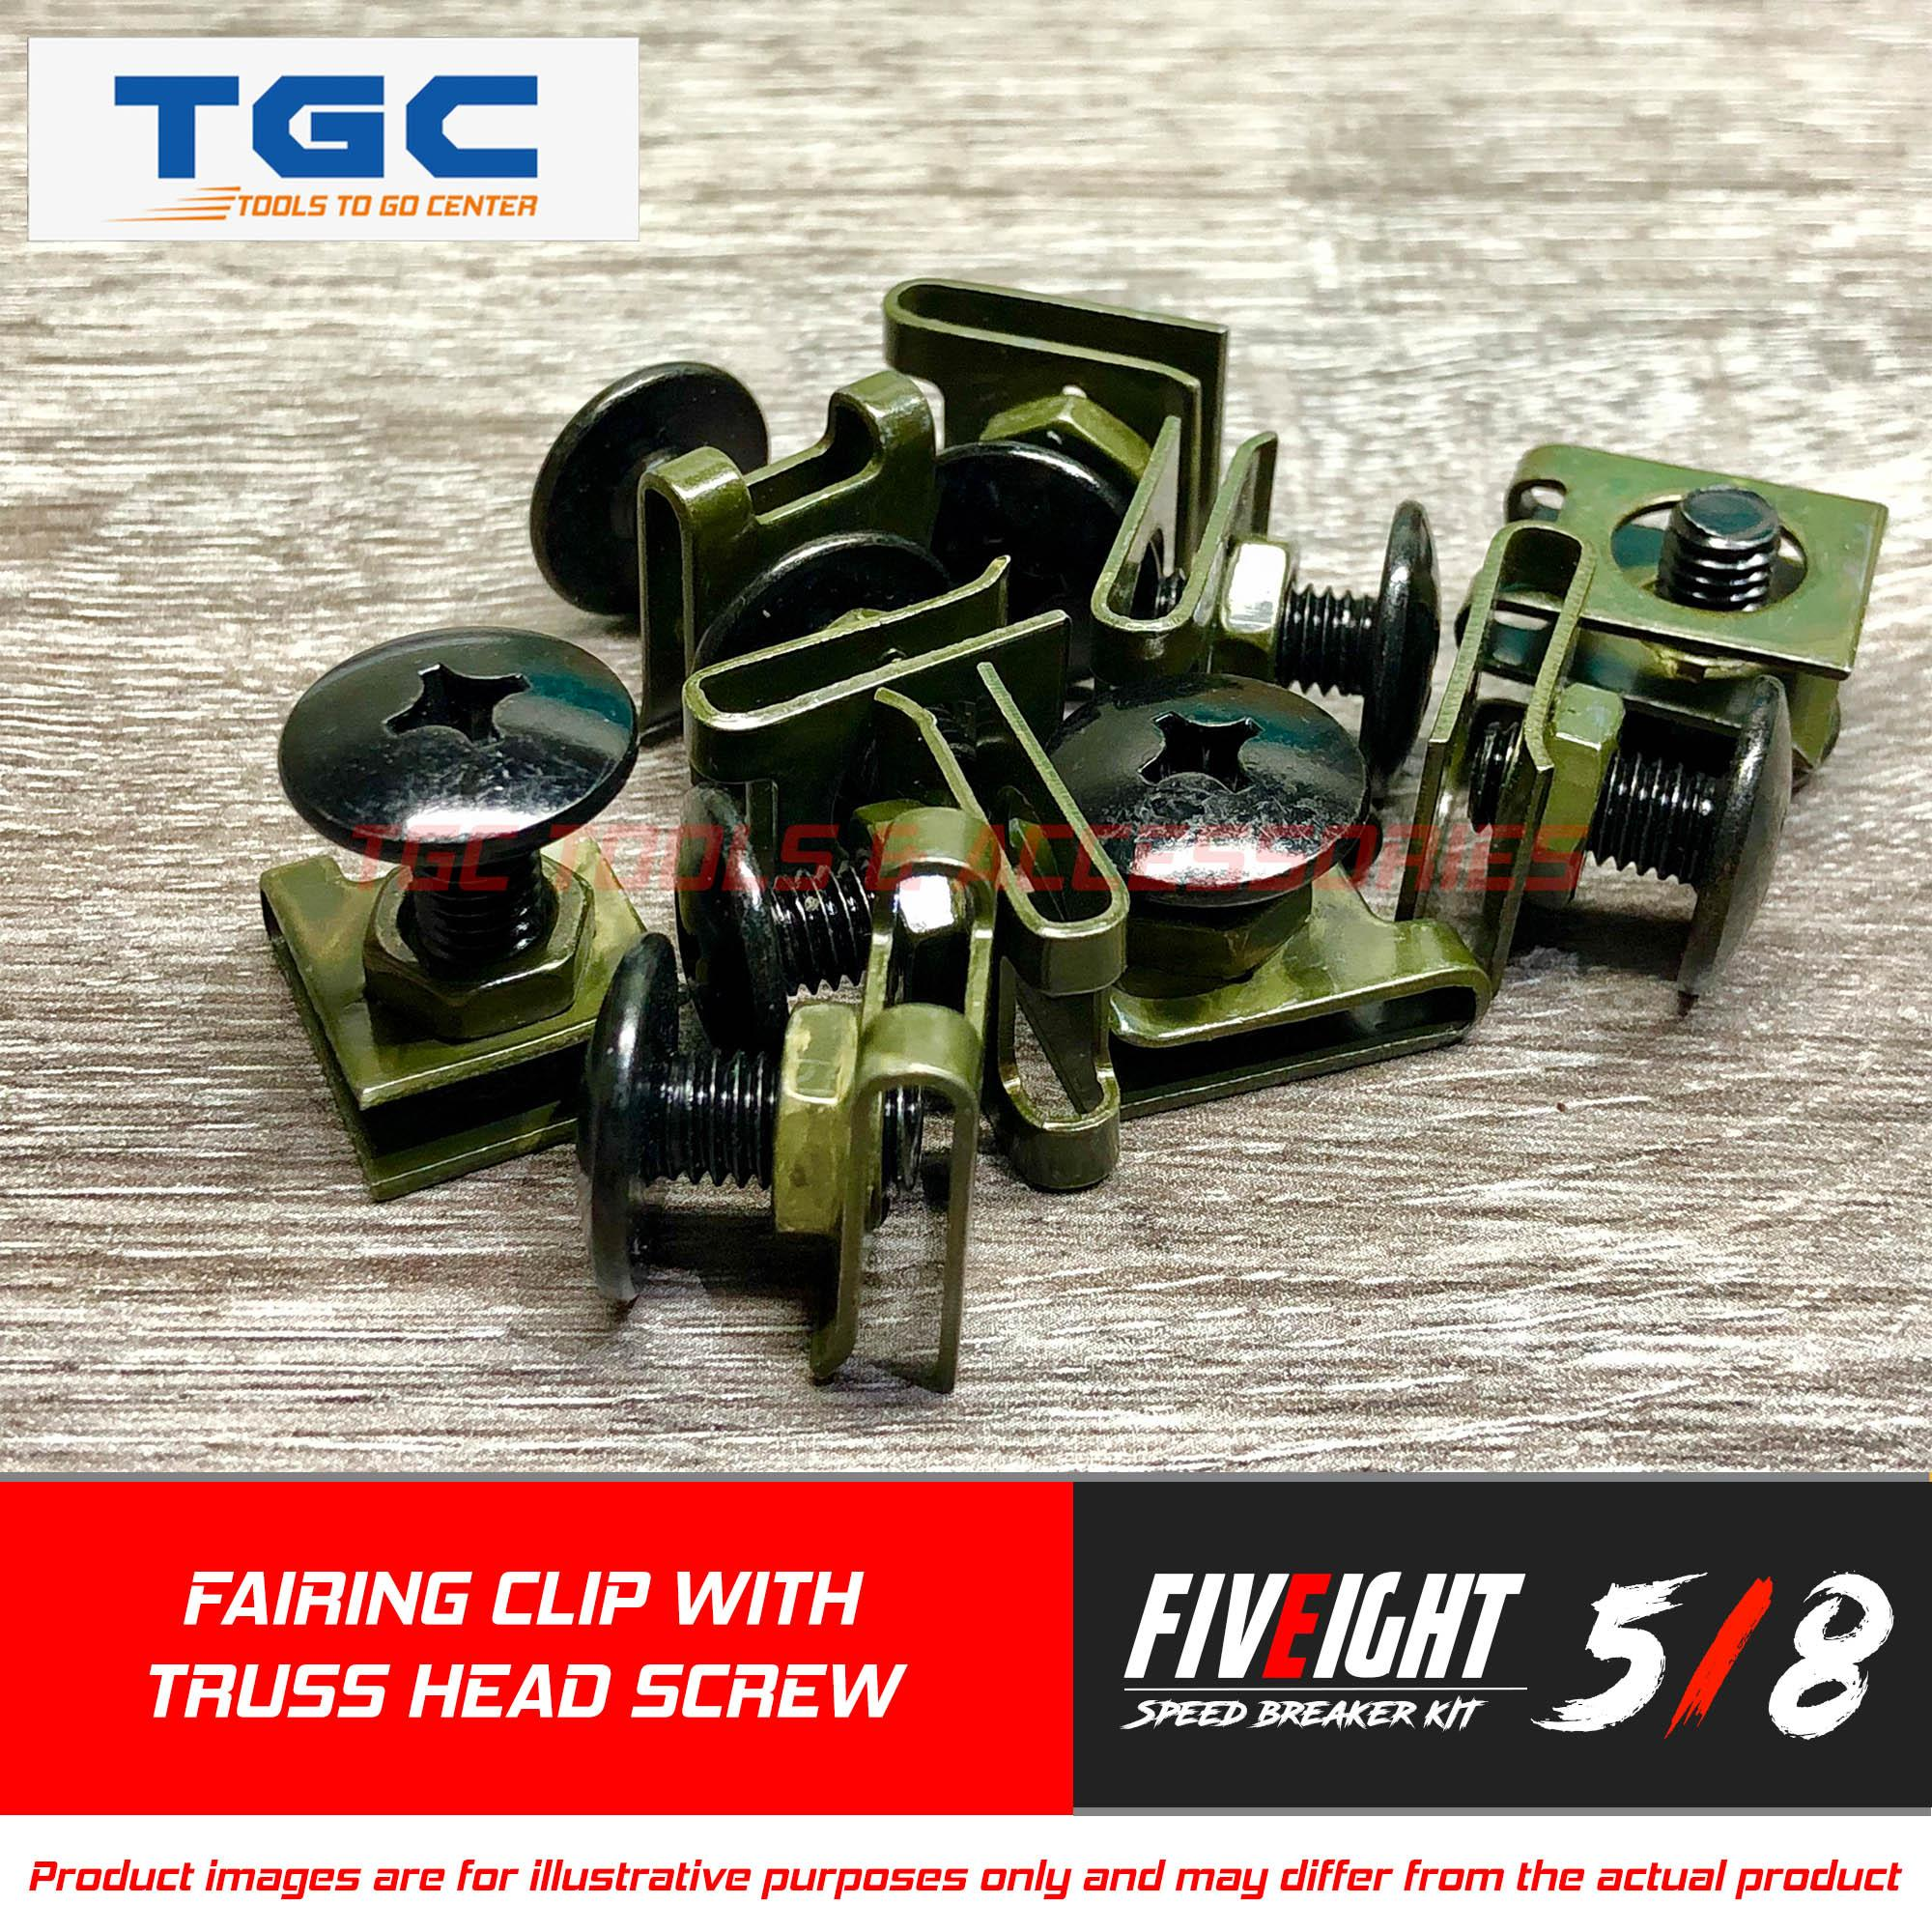 Five Eight Speed 10pcs Motorcycle Fairing Screw Bolt Set M6 X 12mm ( Clip Army Green Color With Black Truss Head Bolt ) Hi-Tensile Fastener Clips Screw Flaring Body Bolt Motor With Clip Nut Tgc By Tgc Tools & Accessories.